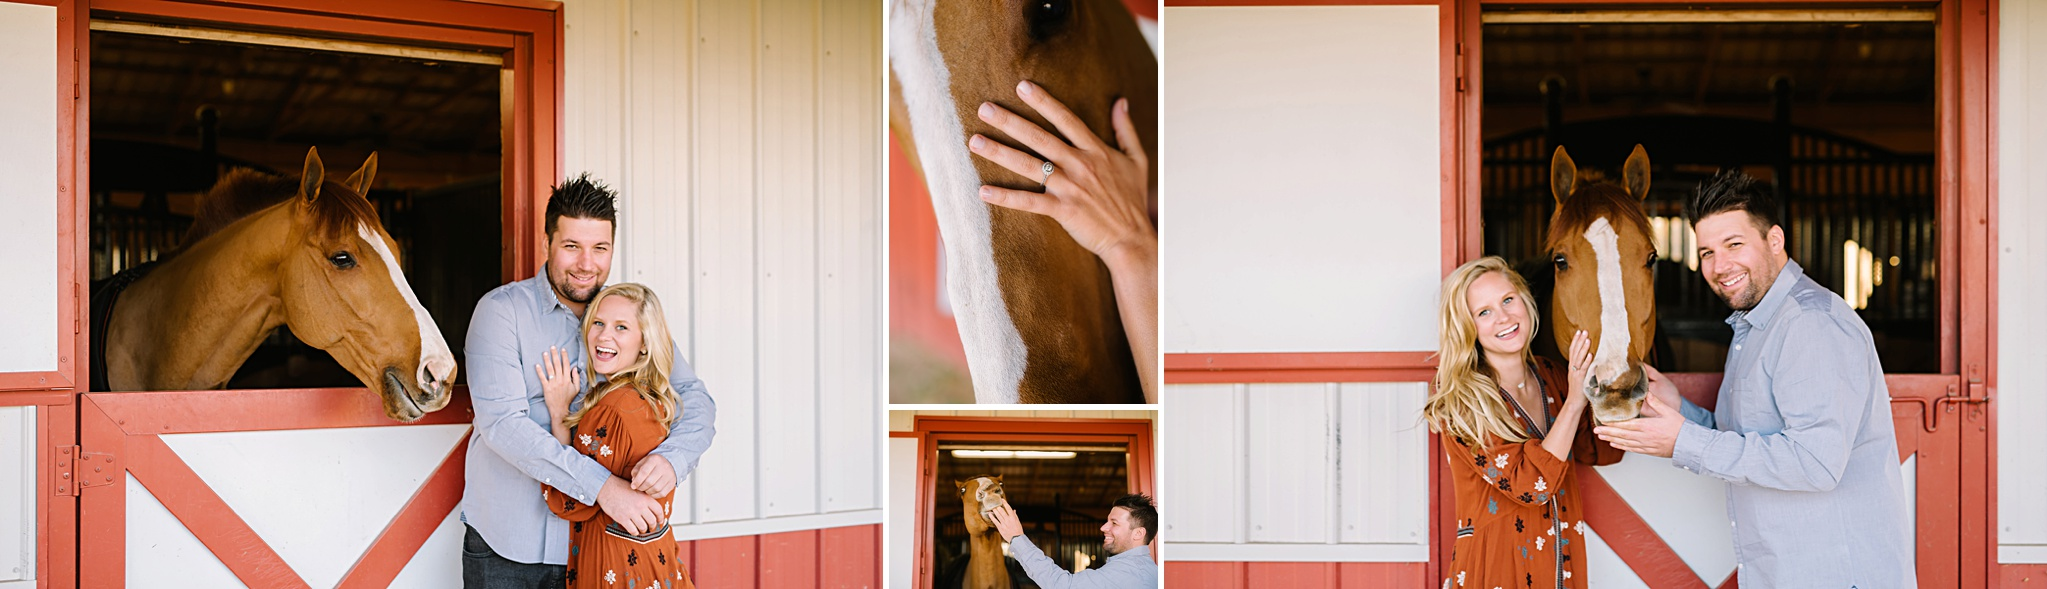 engagement-session-with-horses